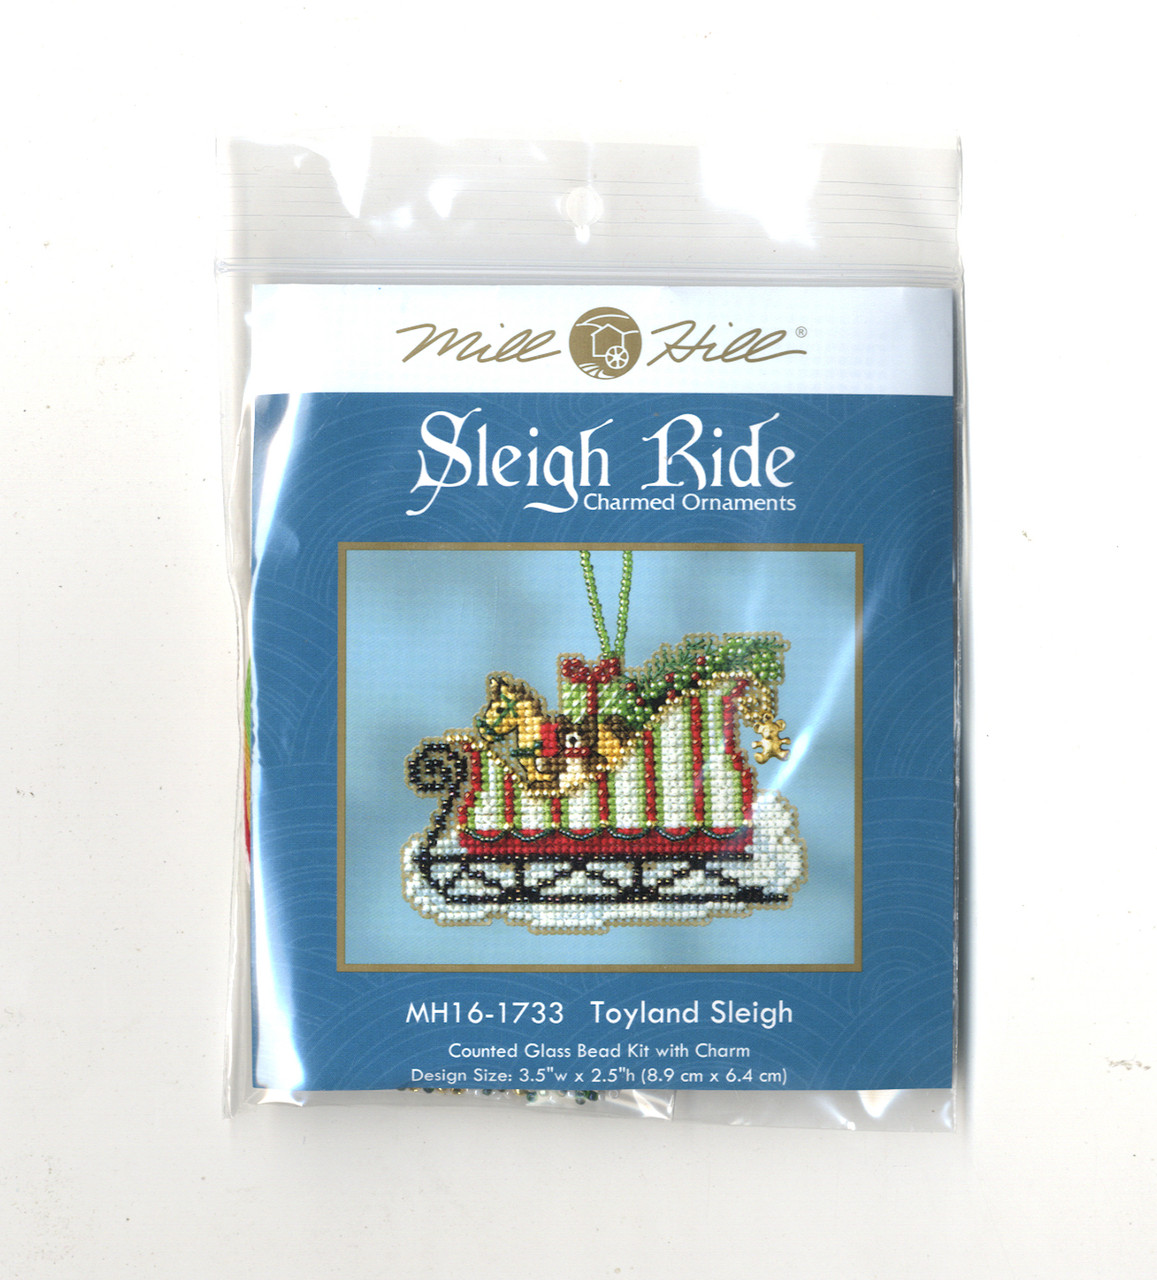 Mill Hill 2017 Sleigh Ride Charmed Ornament - Toyland Sleigh